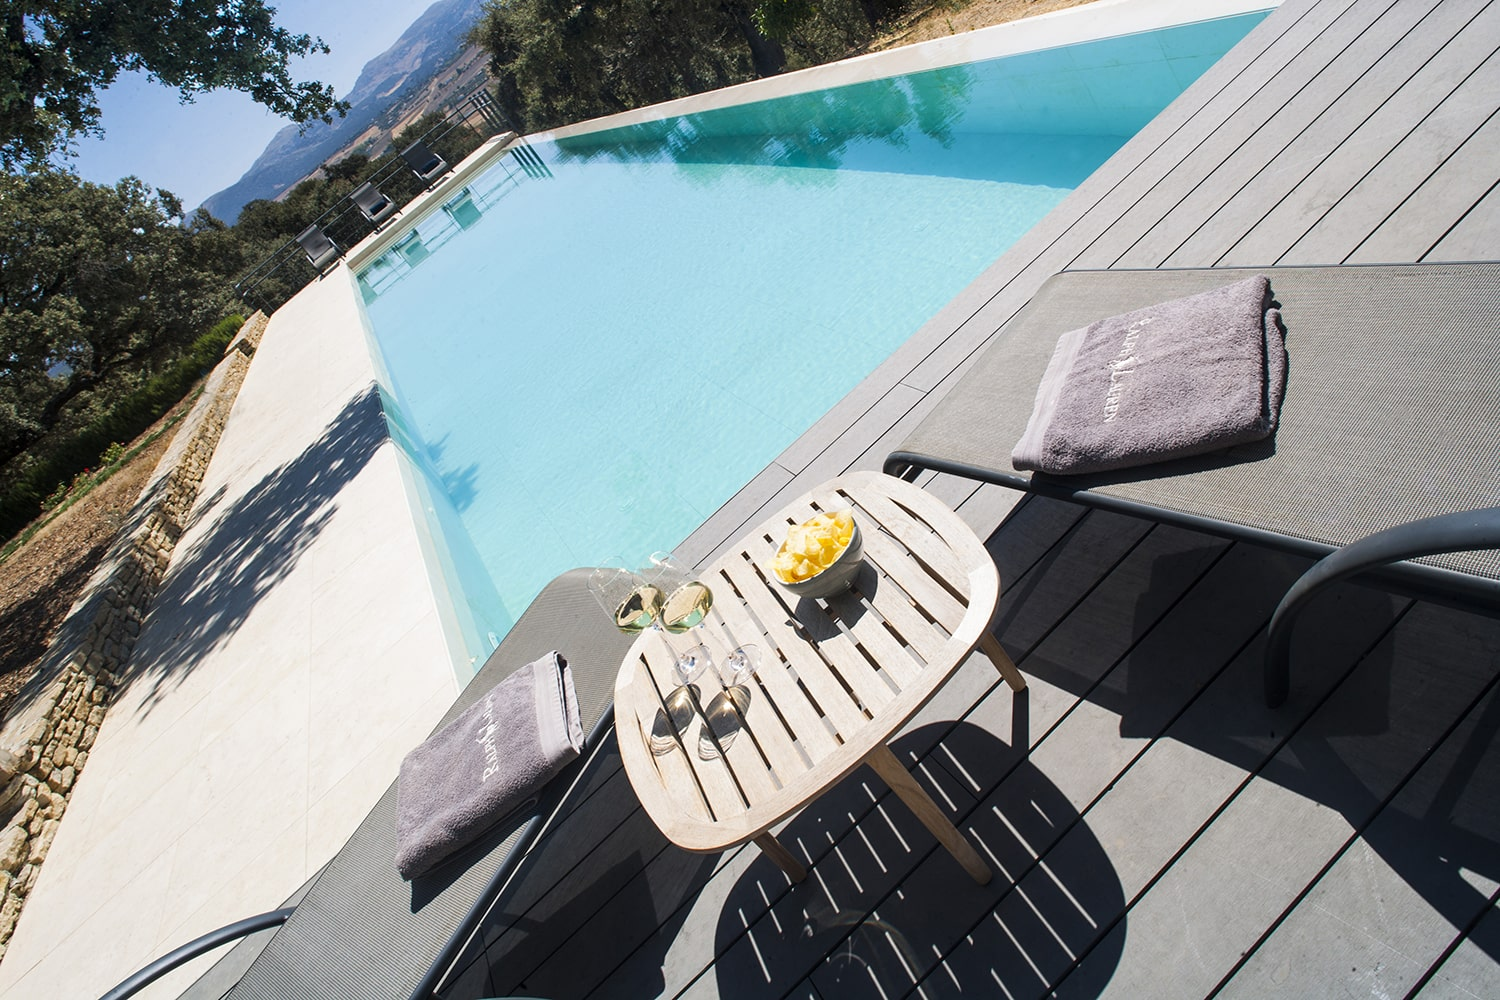 /storage/images/pages/the-holiday-blog/luxury-holiday-villas-spain-237-05-min.jpg